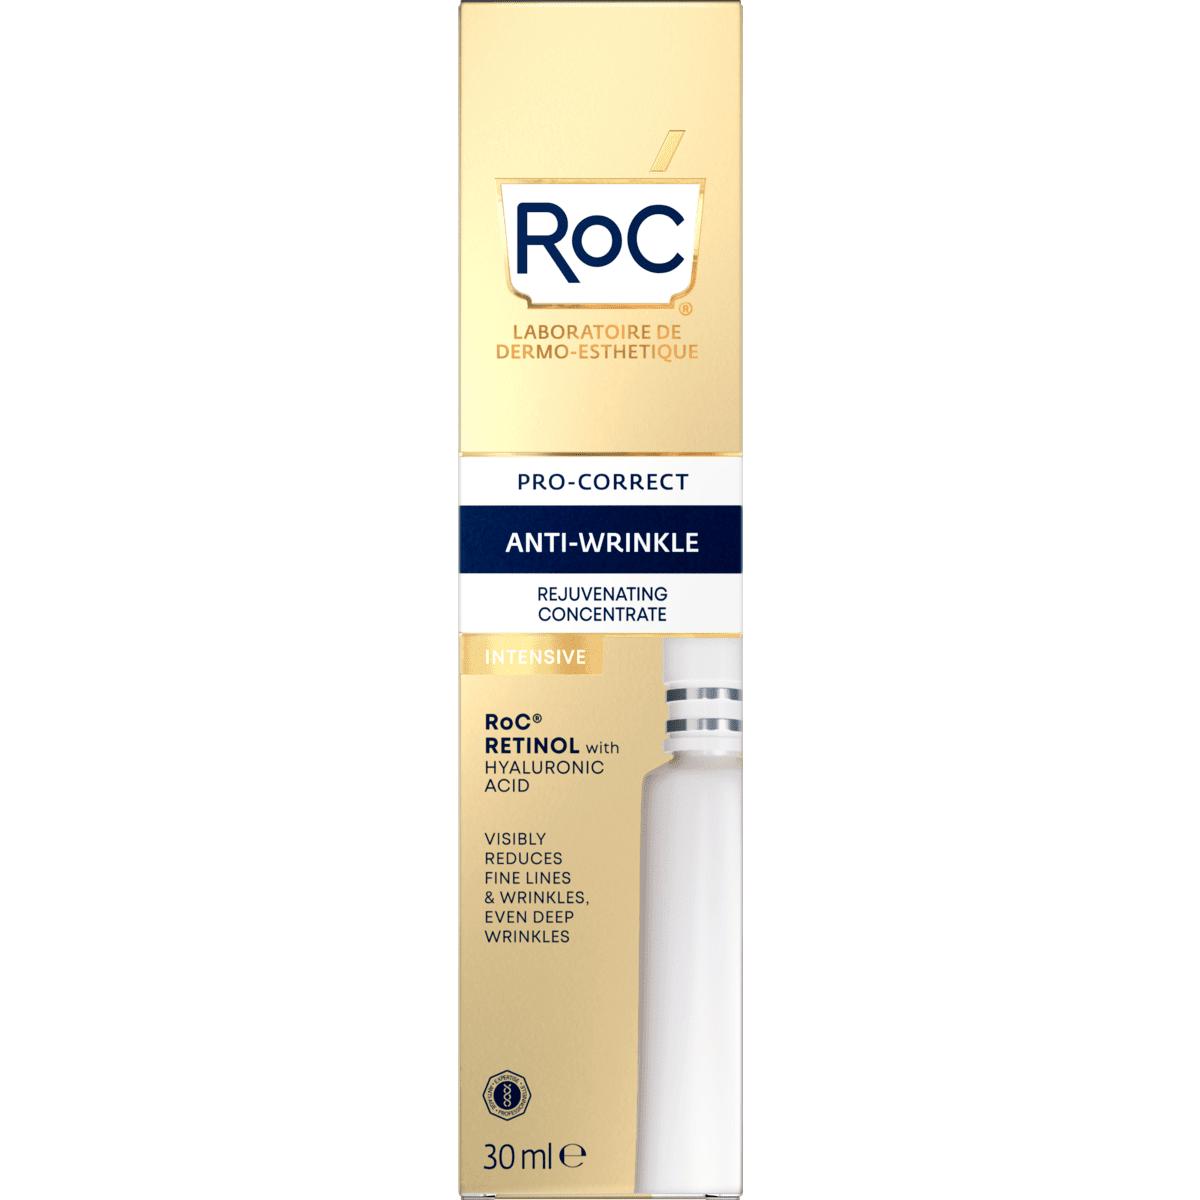 Roc  Pro-Correct Anti-Wrinkle Rejuvenating Concentrate Intensive